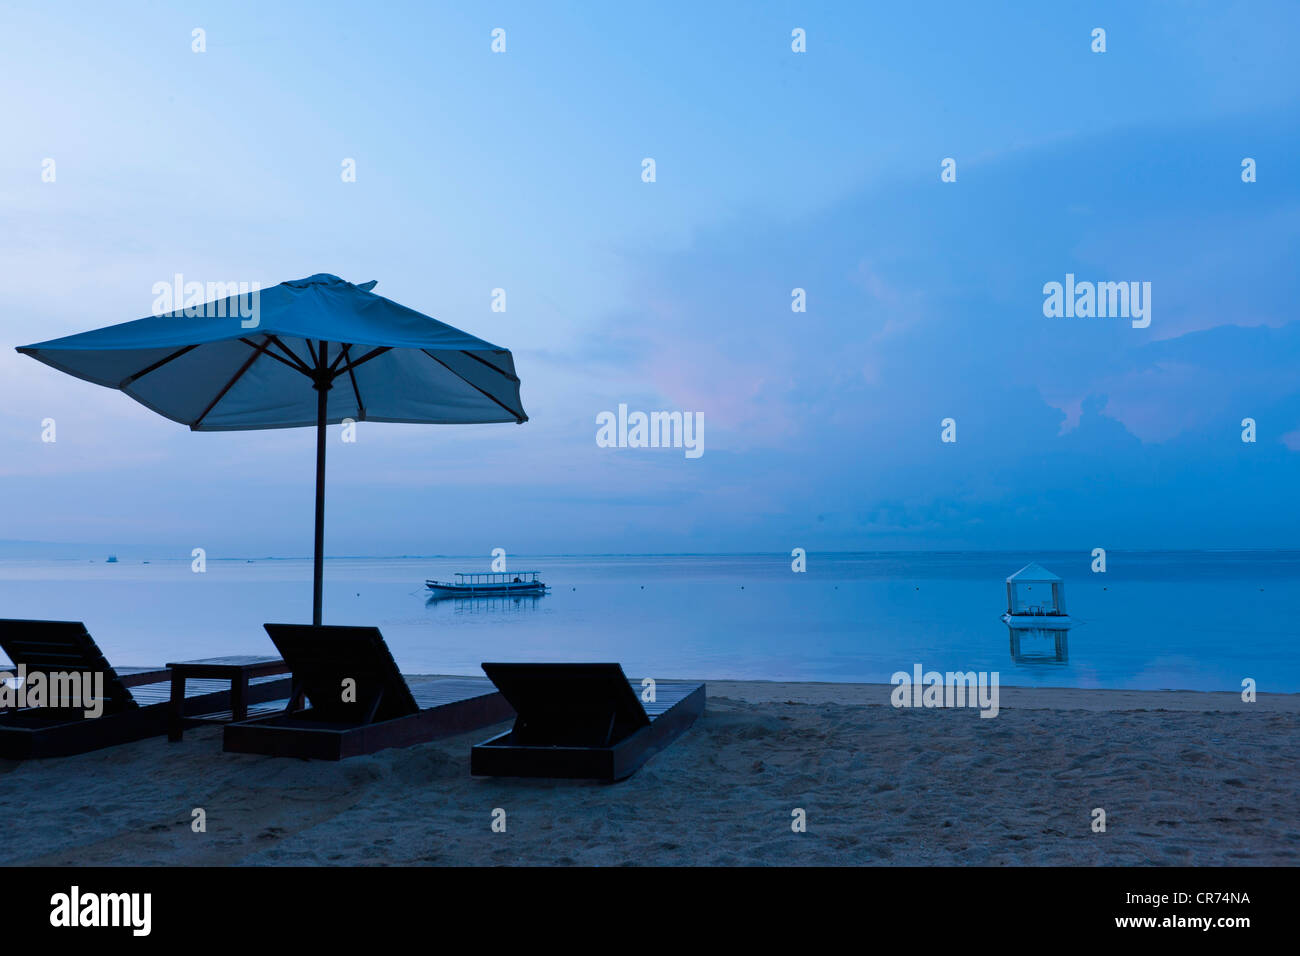 Indonesia, Bali, Sanur, Sun loungers and sunshade on beach - Stock Image